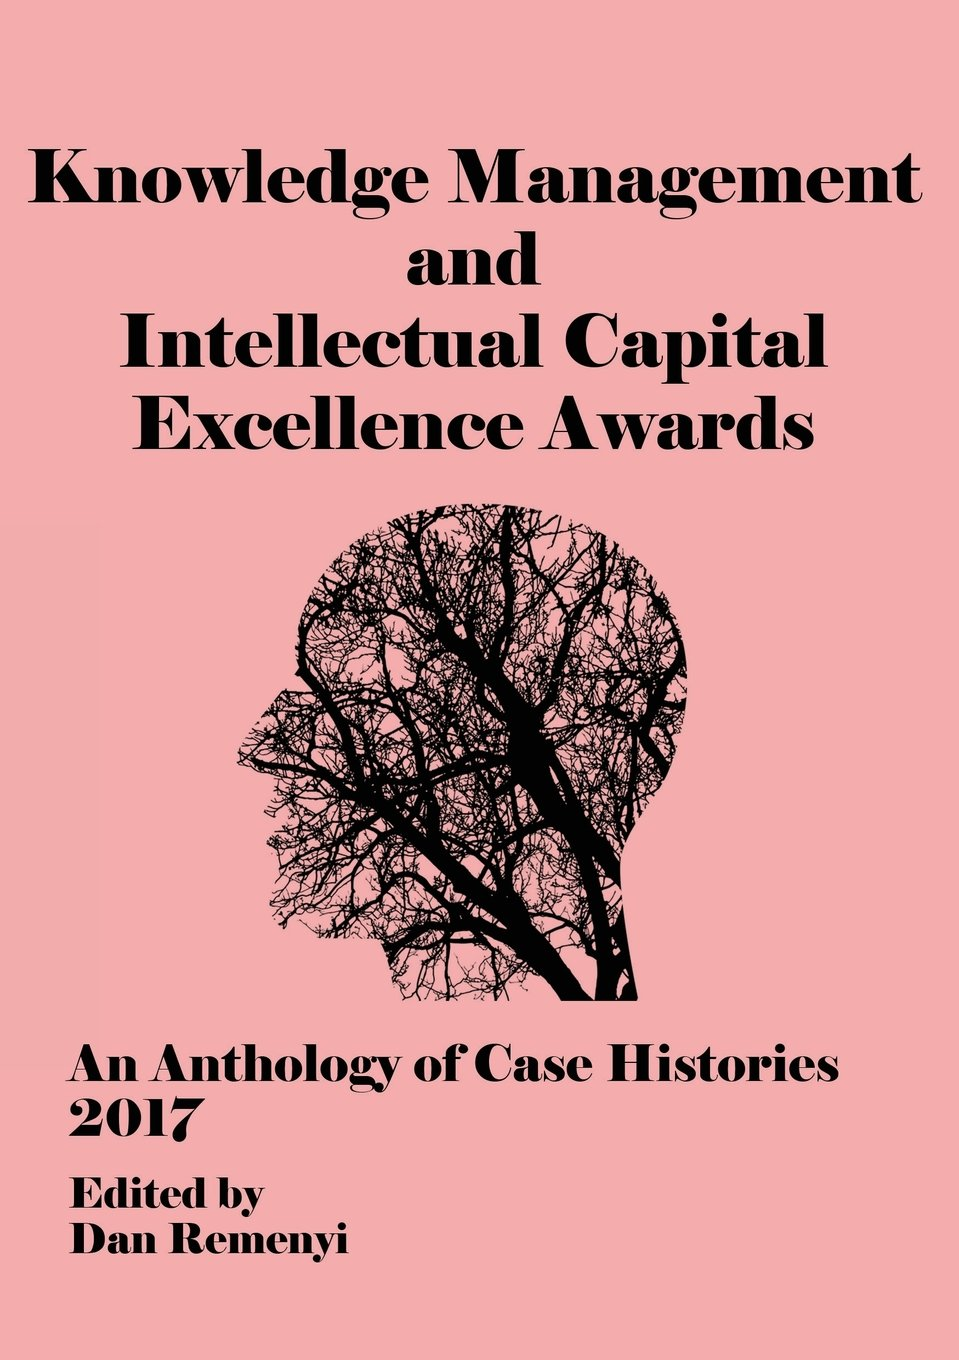 Download ECKM 2017: The Knowledge Management and Intellectual Capital Excellence Awards 2017   An Anthology of Case Histories pdf epub